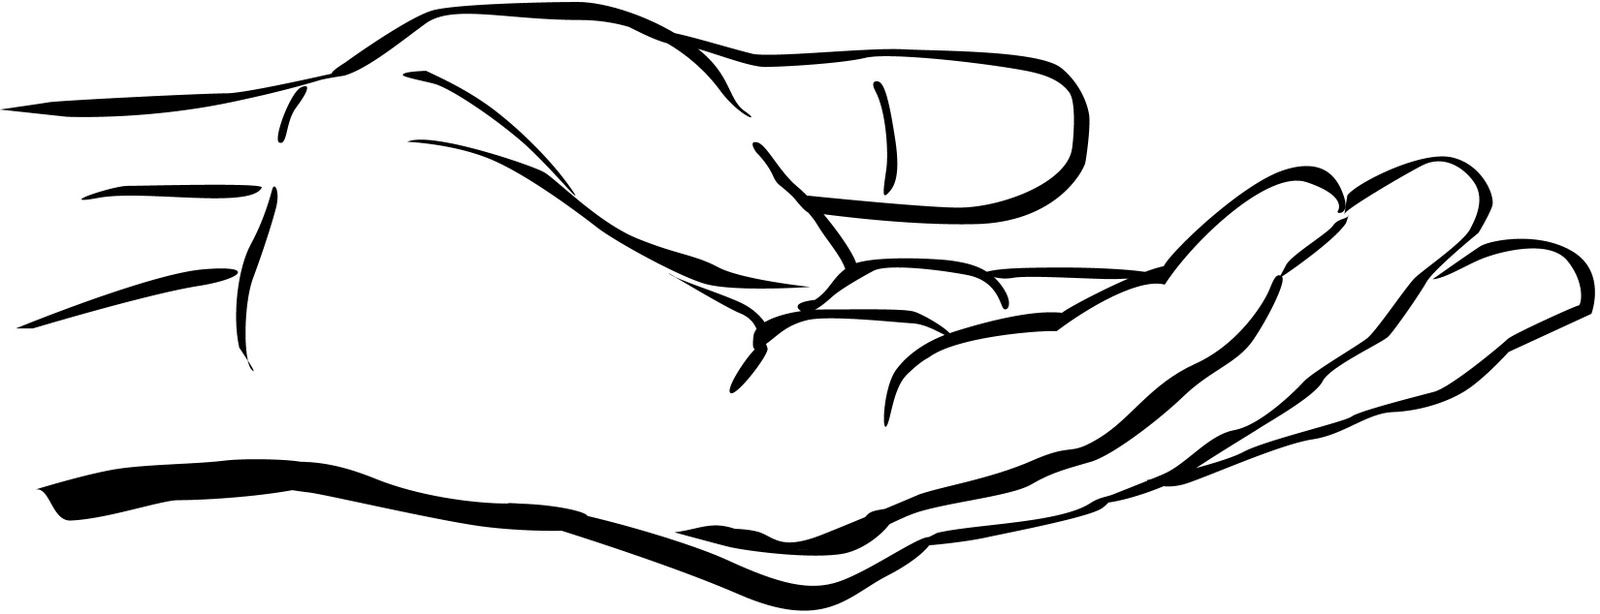 Clipart Black And White Hand Clip Art Outstretched Hand Clipart